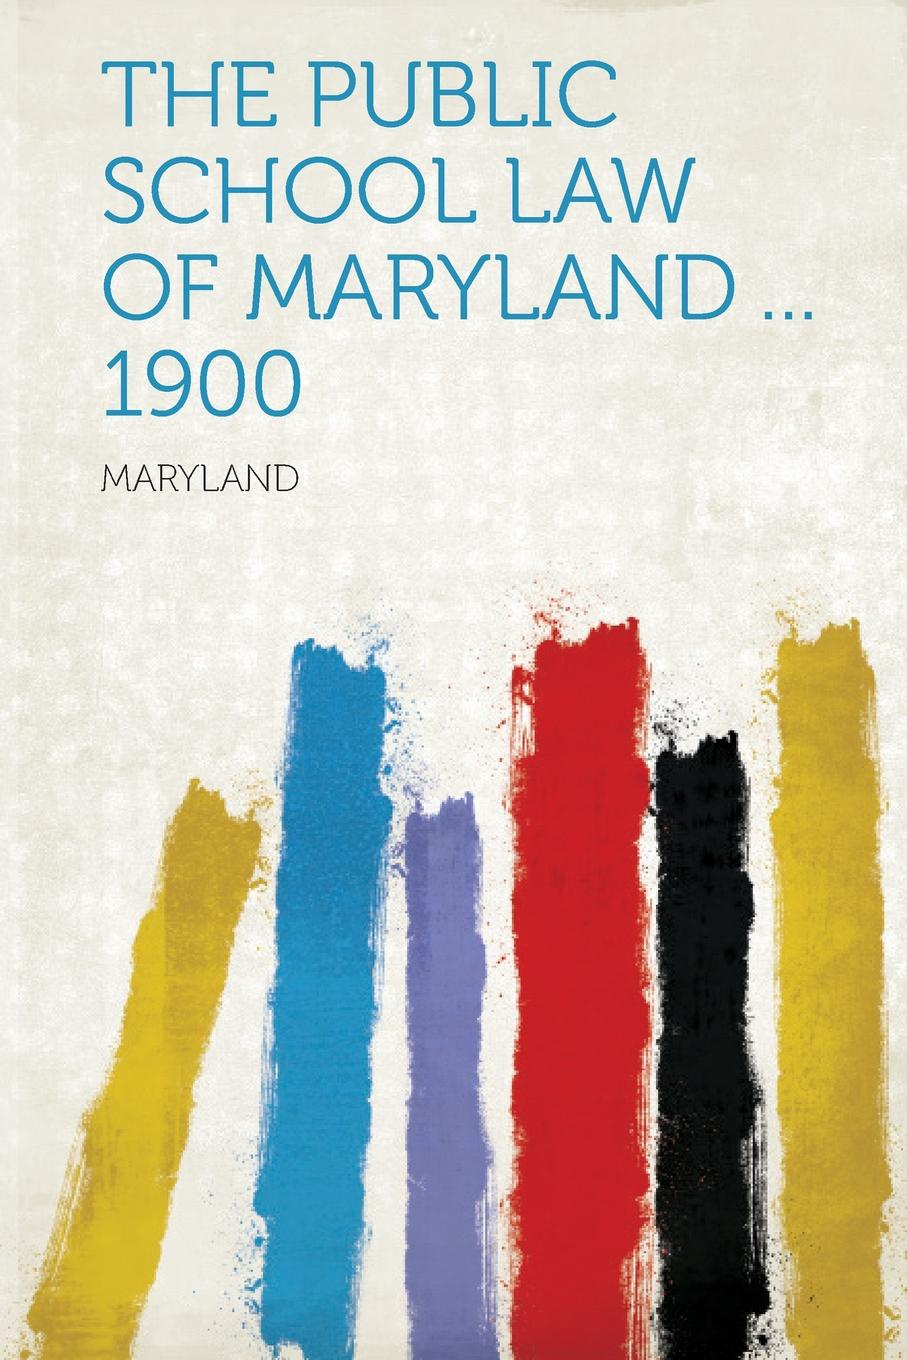 Maryland The Public School Law of Maryland ... 1900